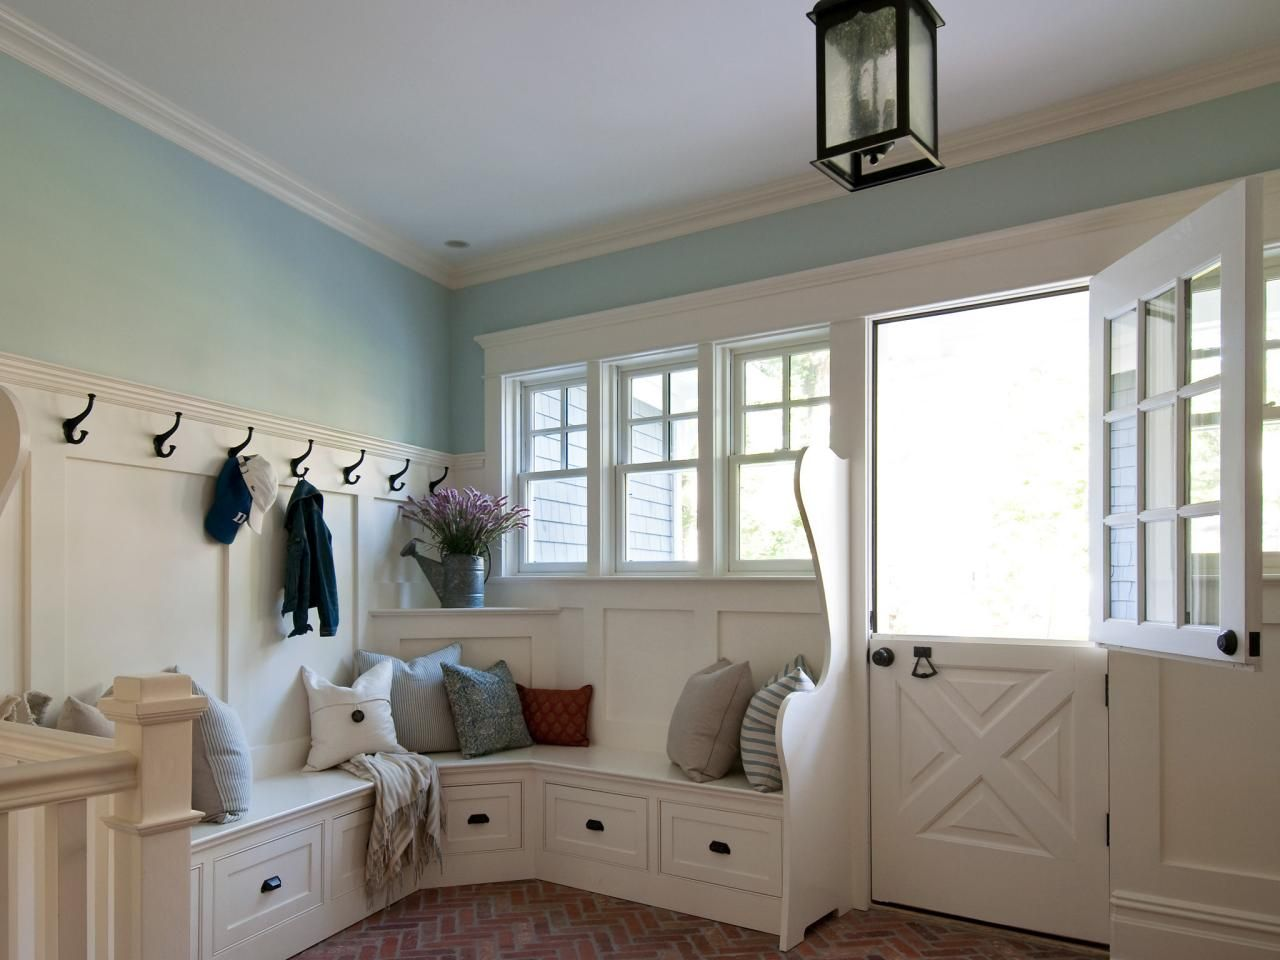 8 pictures of stylish functional mudrooms - Mudroom Design Ideas